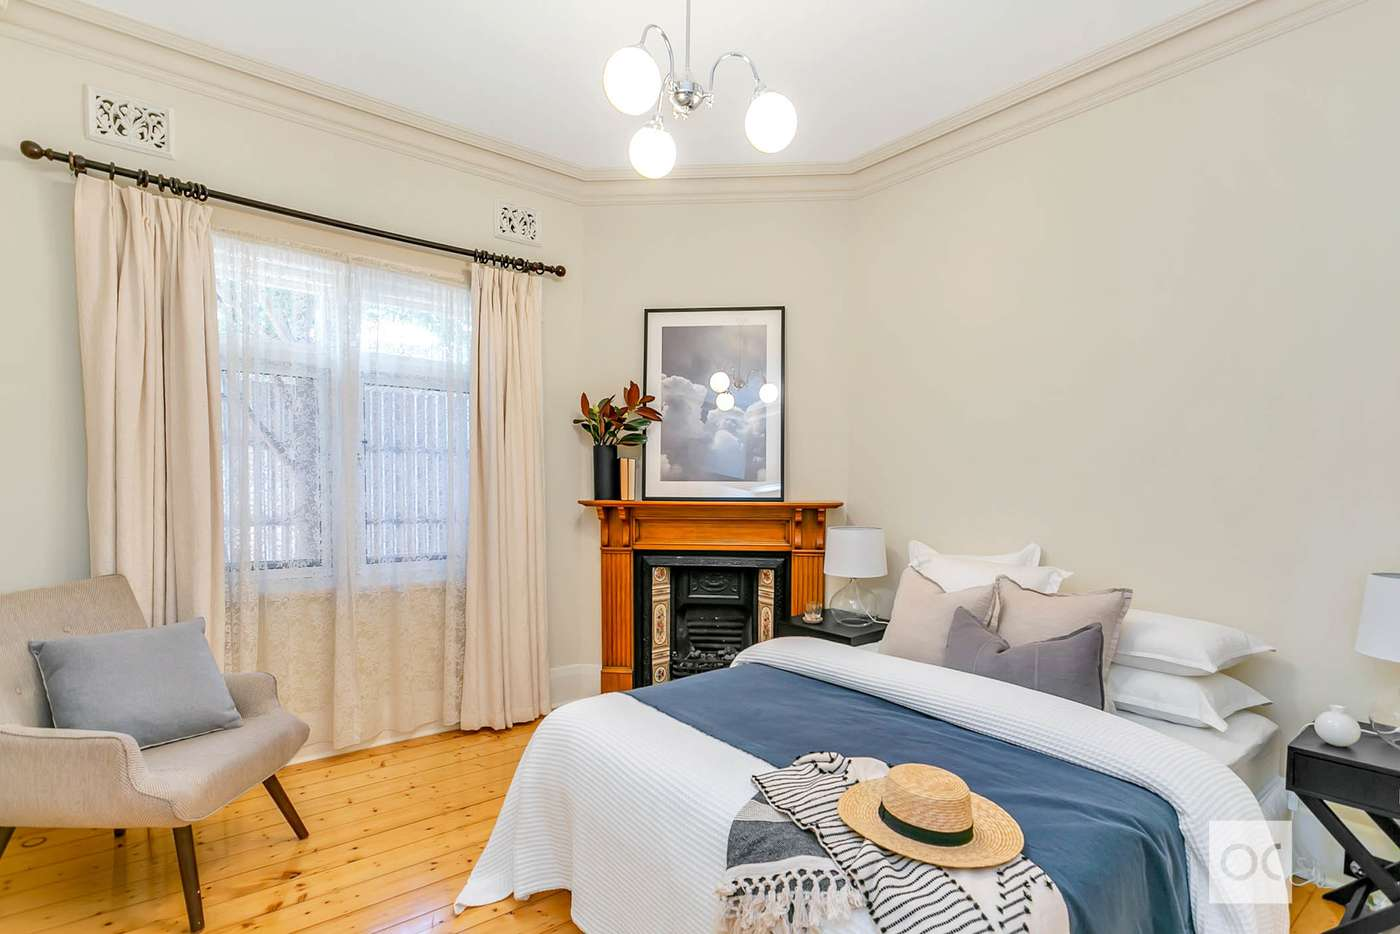 Fifth view of Homely house listing, 54 Penang Avenue, Colonel Light Gardens SA 5041